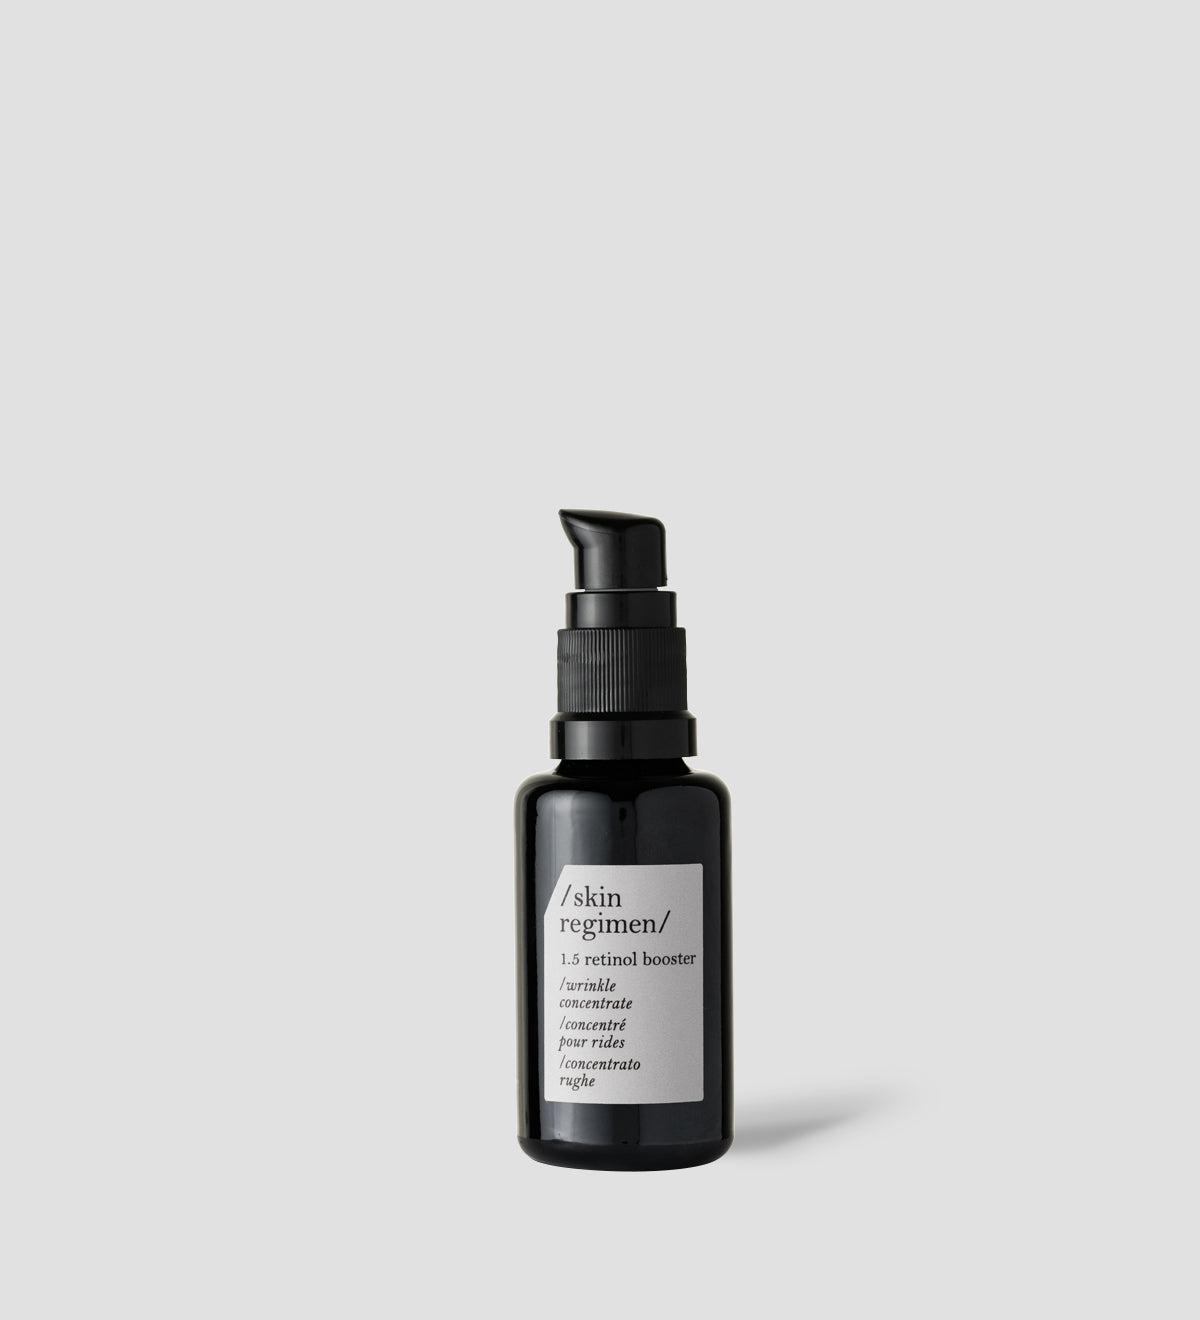 Comfort Zone: SKIN REGIMEN 1.5 RETINOL BOOSTER Wrinkle concentrate-1